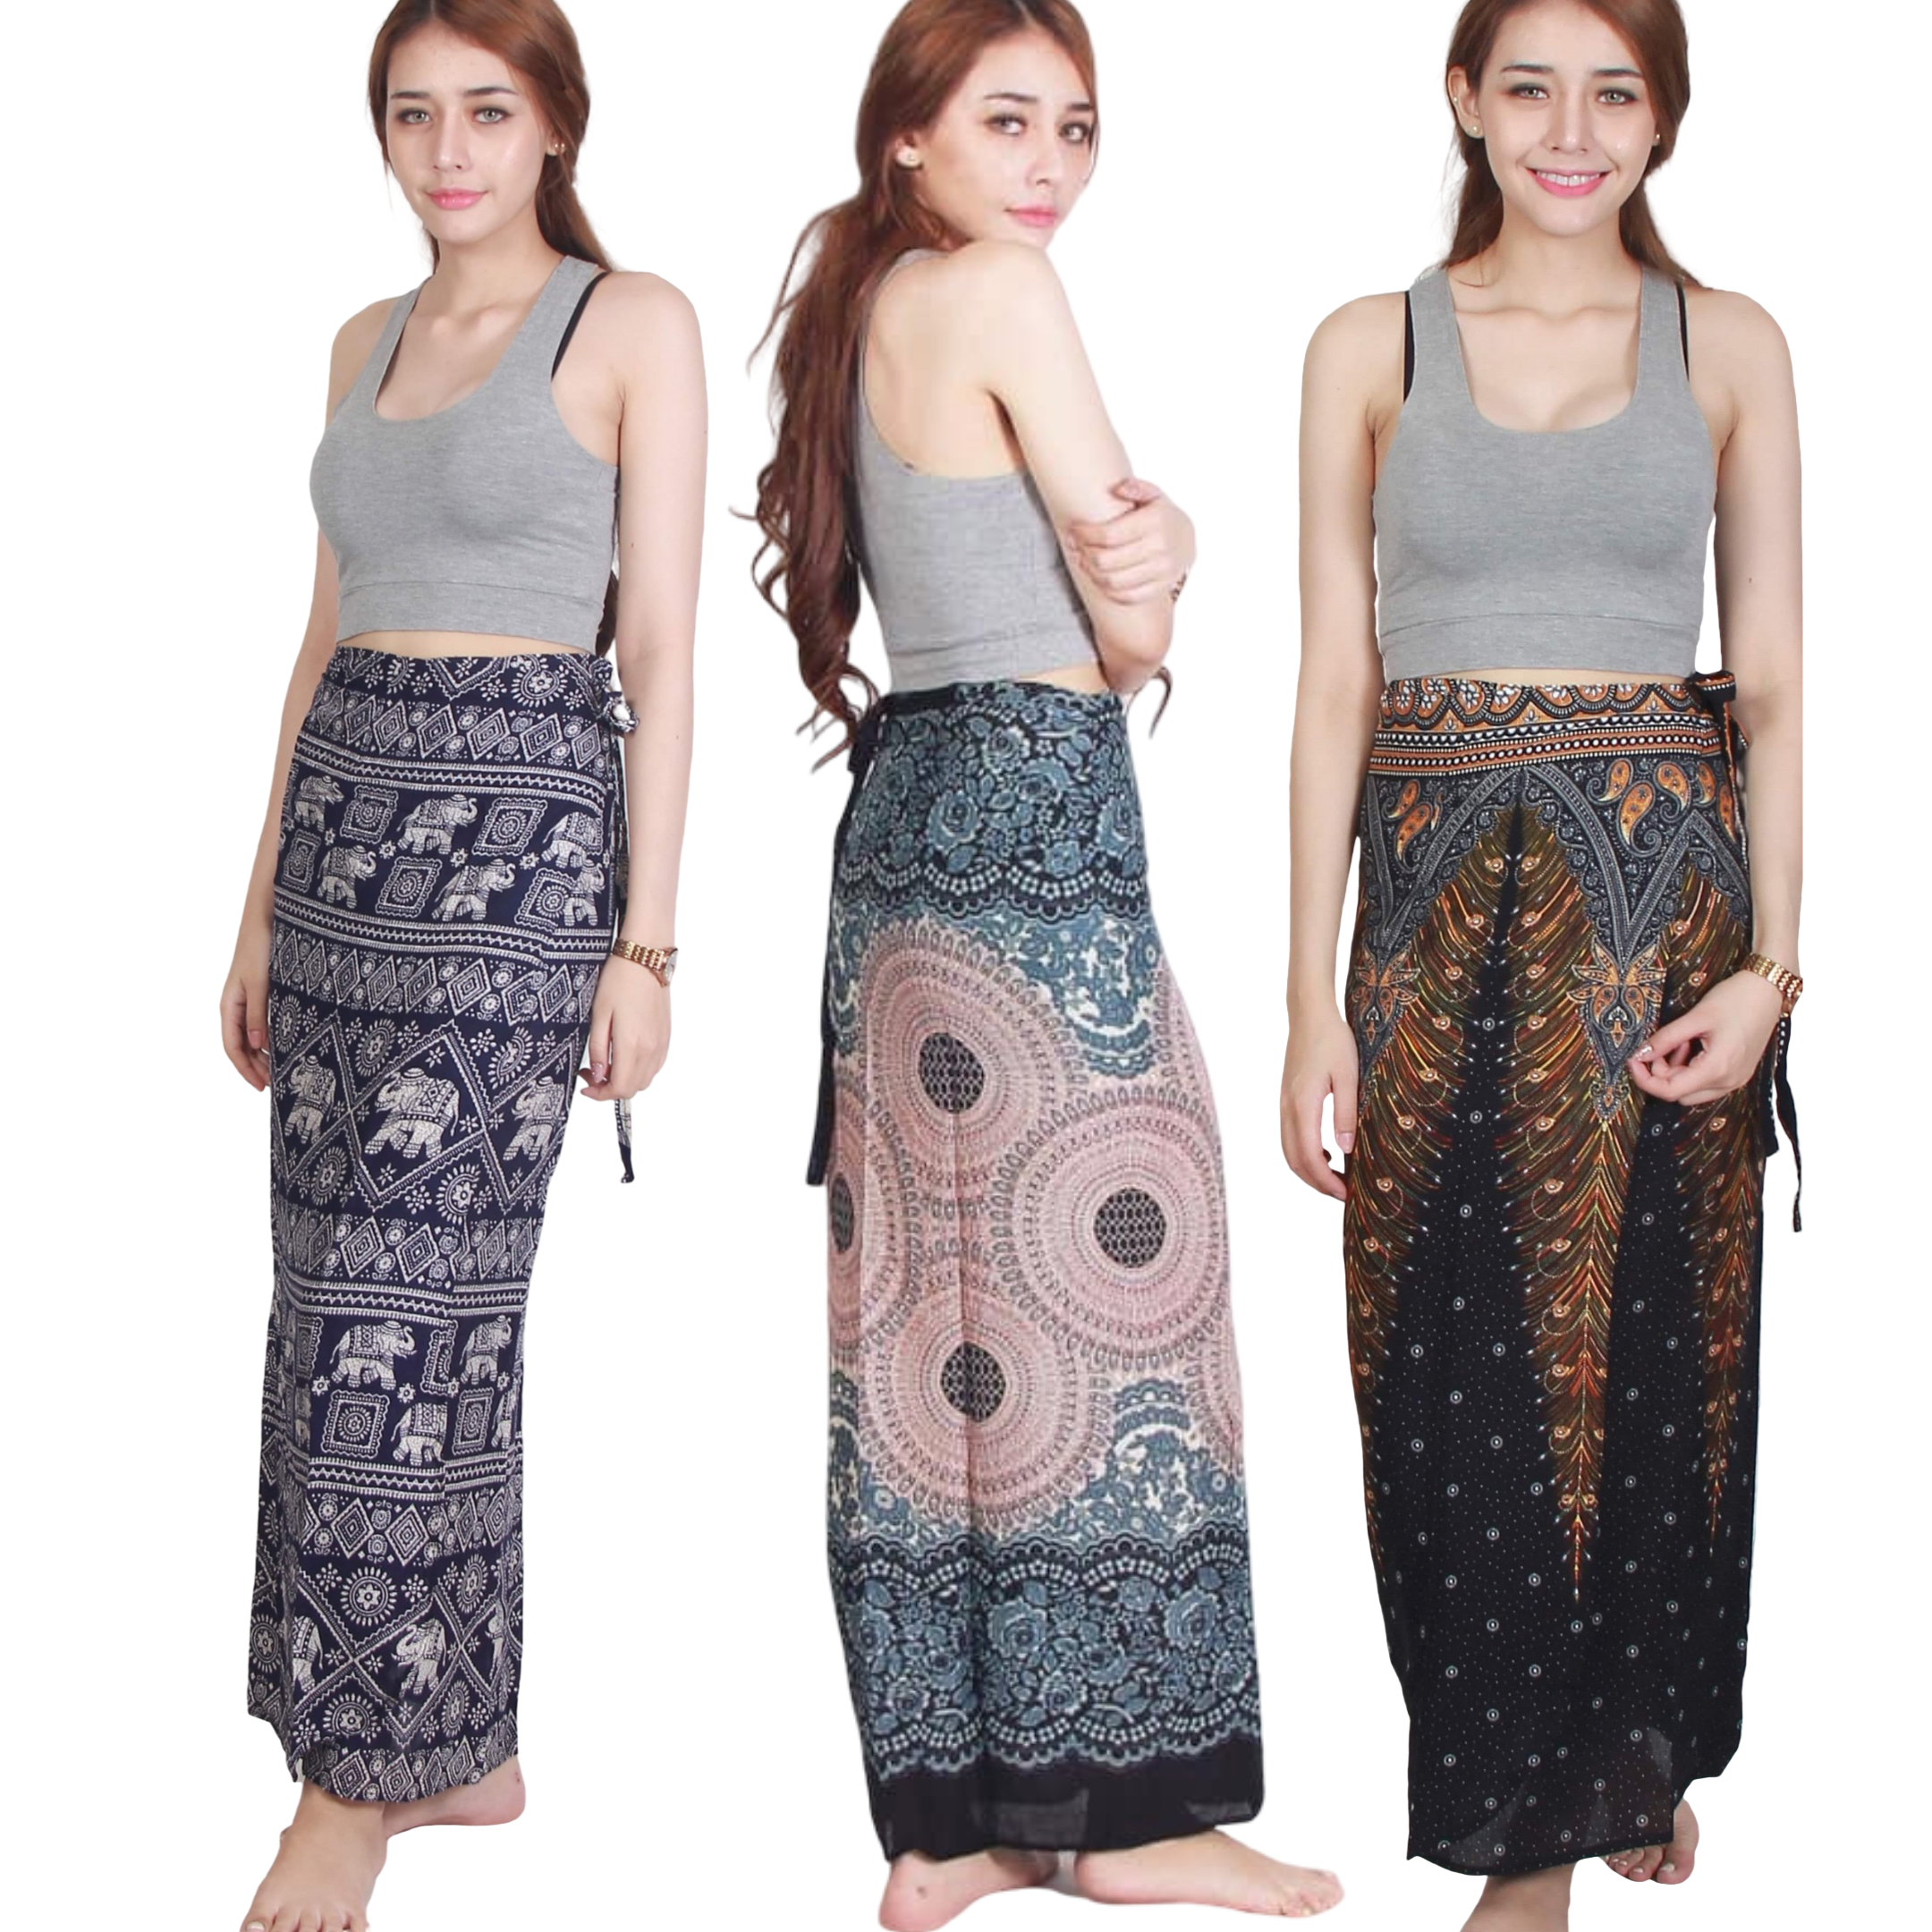 Boho Chic Thai Print Wrap Skirt